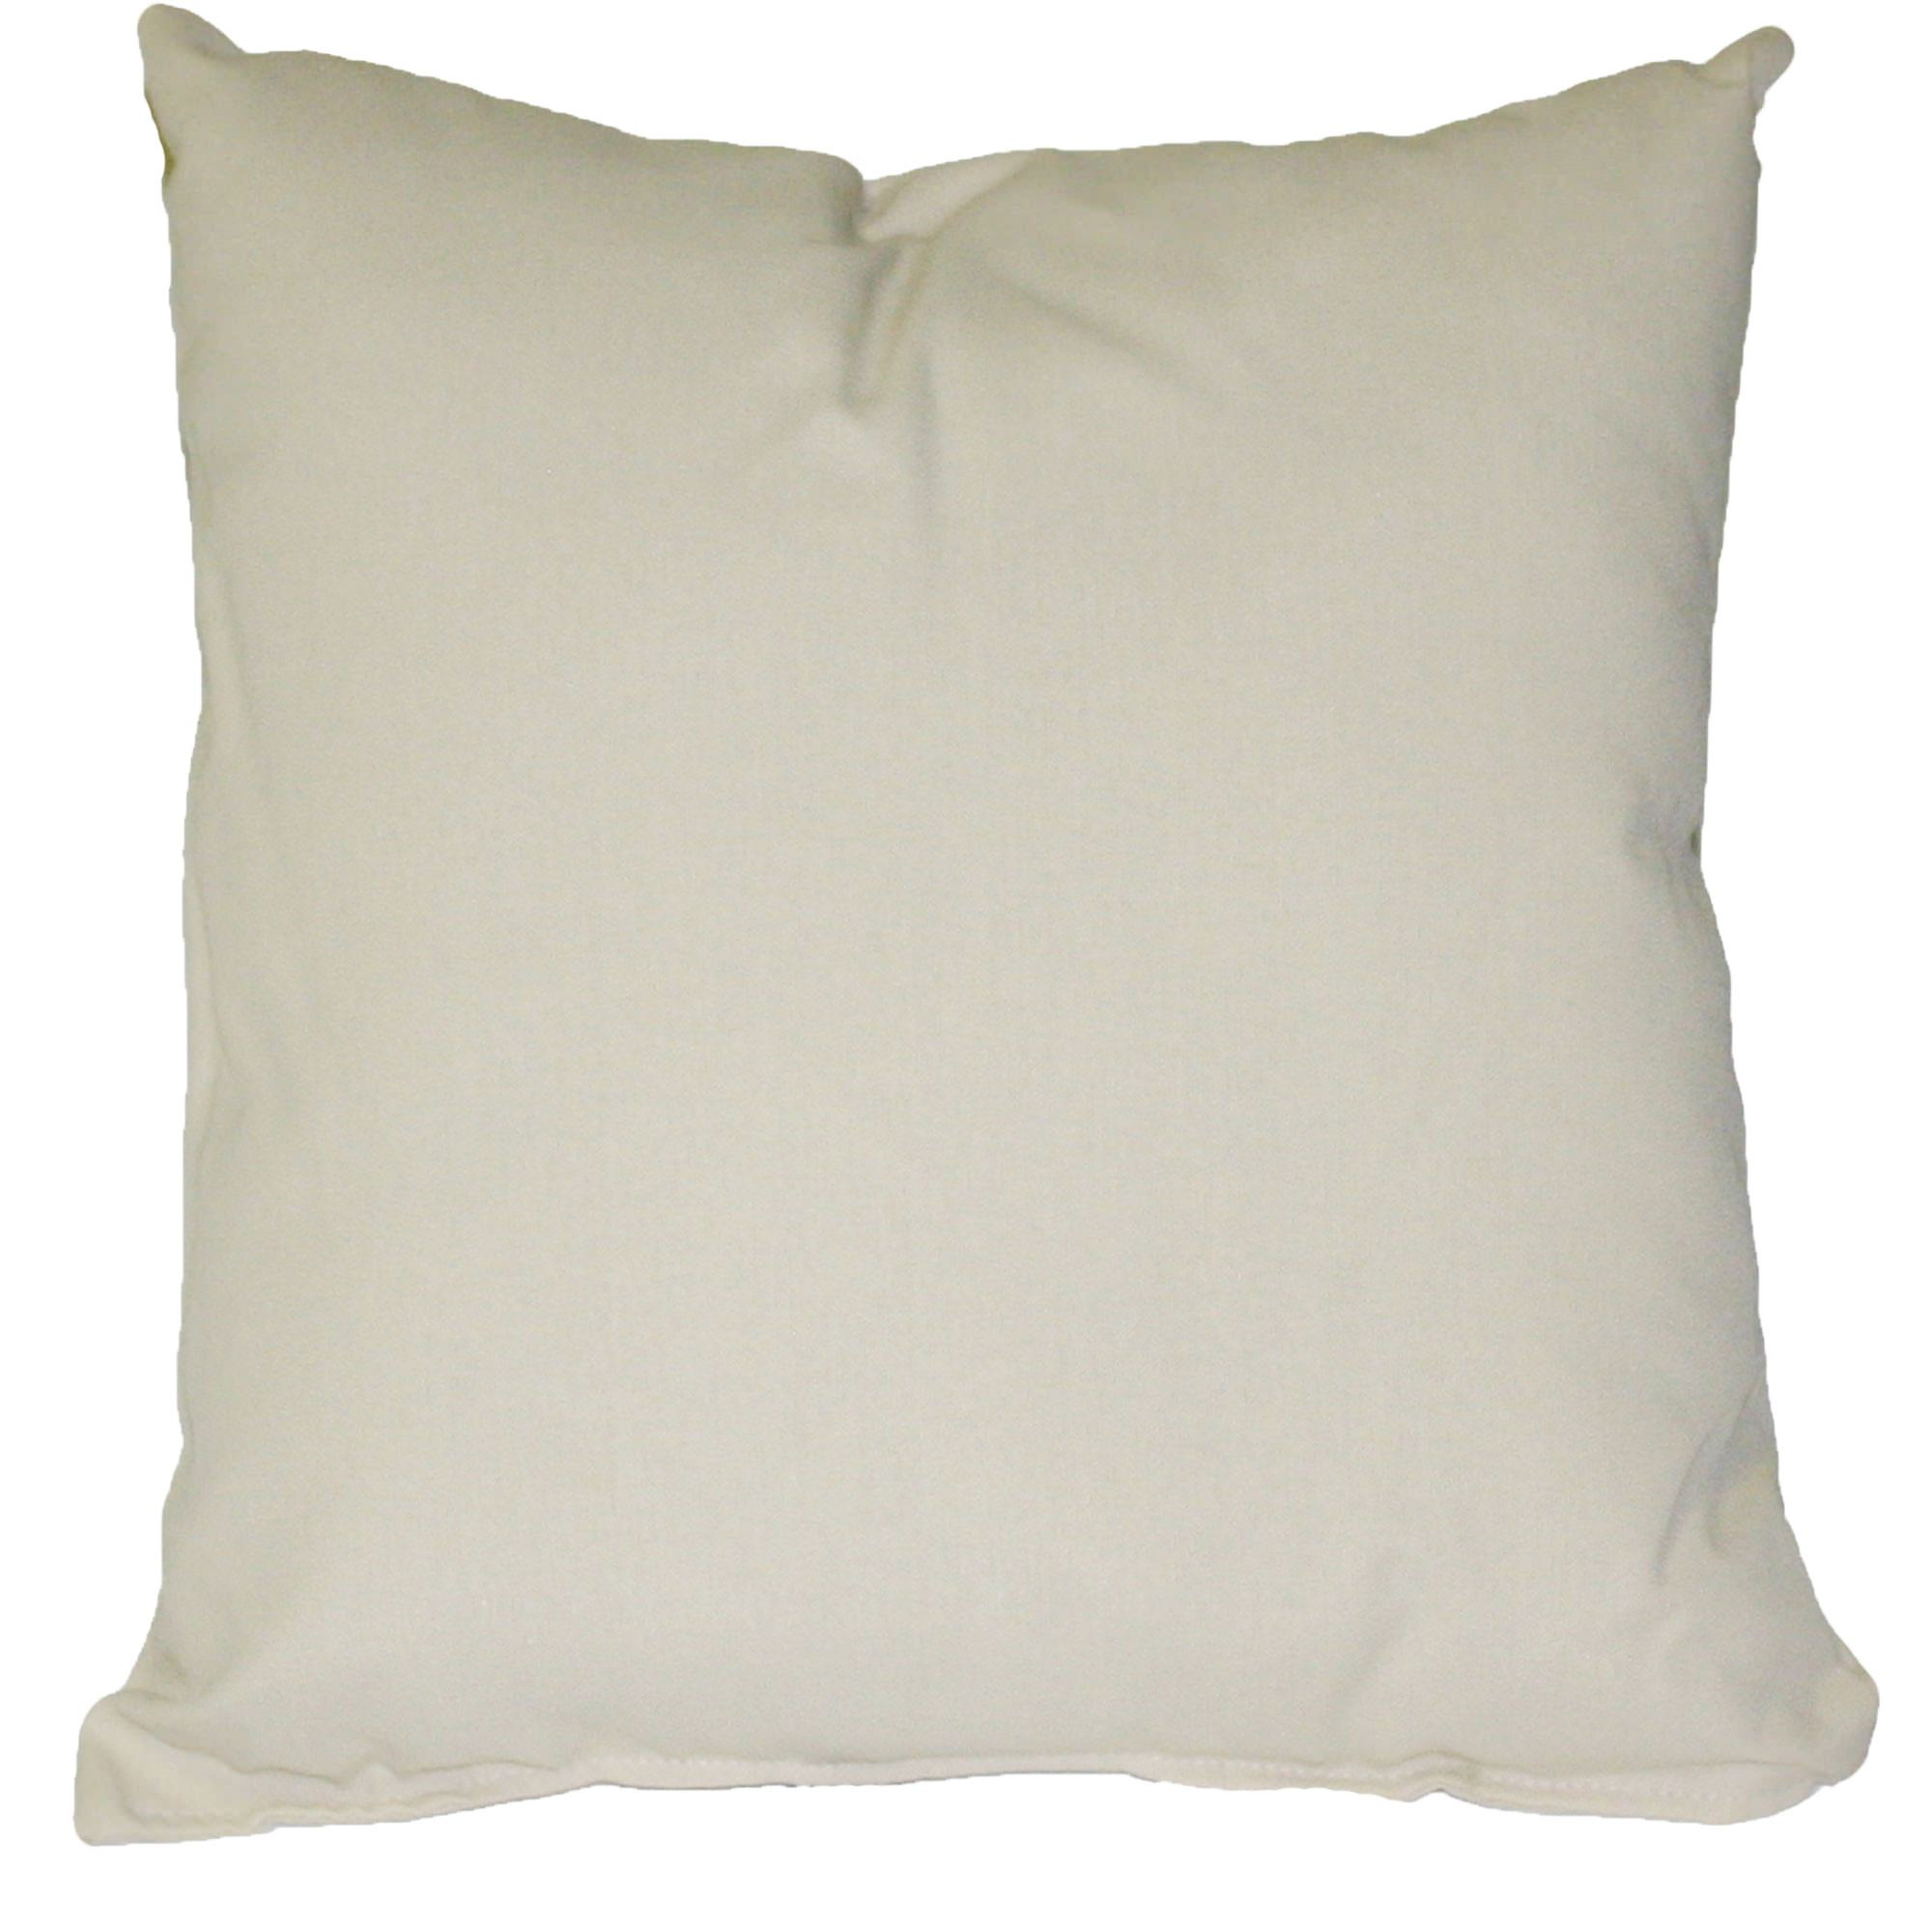 Sunbrella Throw Pillows Clearance : Oatmeal Sunbrella Outdoor Throw Pillow DFOHome